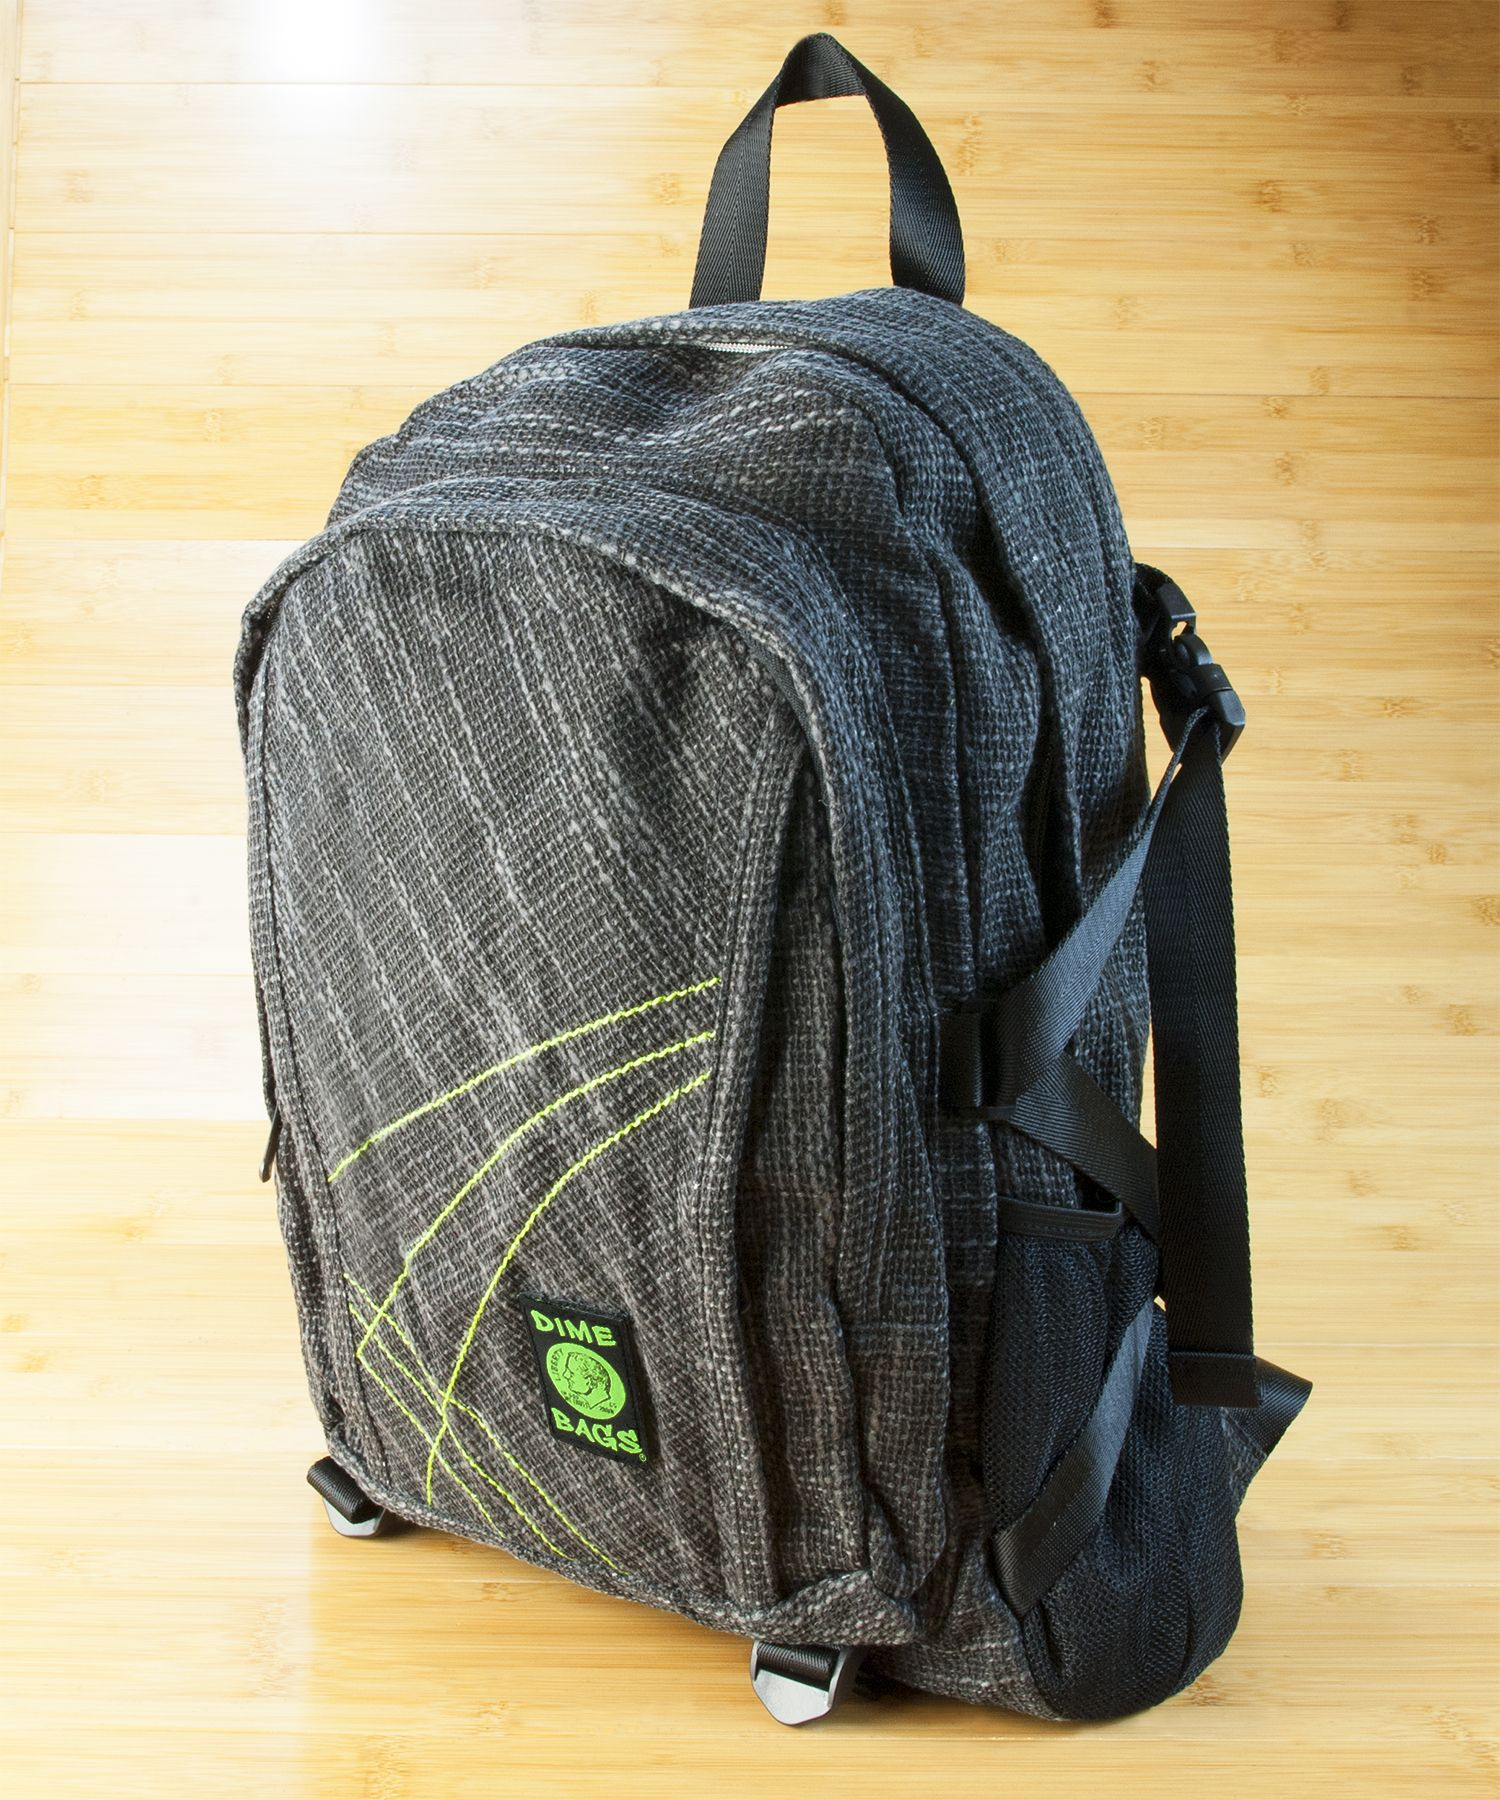 We Have Never Met A Person Who Does Not Love This Hemp Dime Bag Lots Of Storage And Protection For Your Bookore